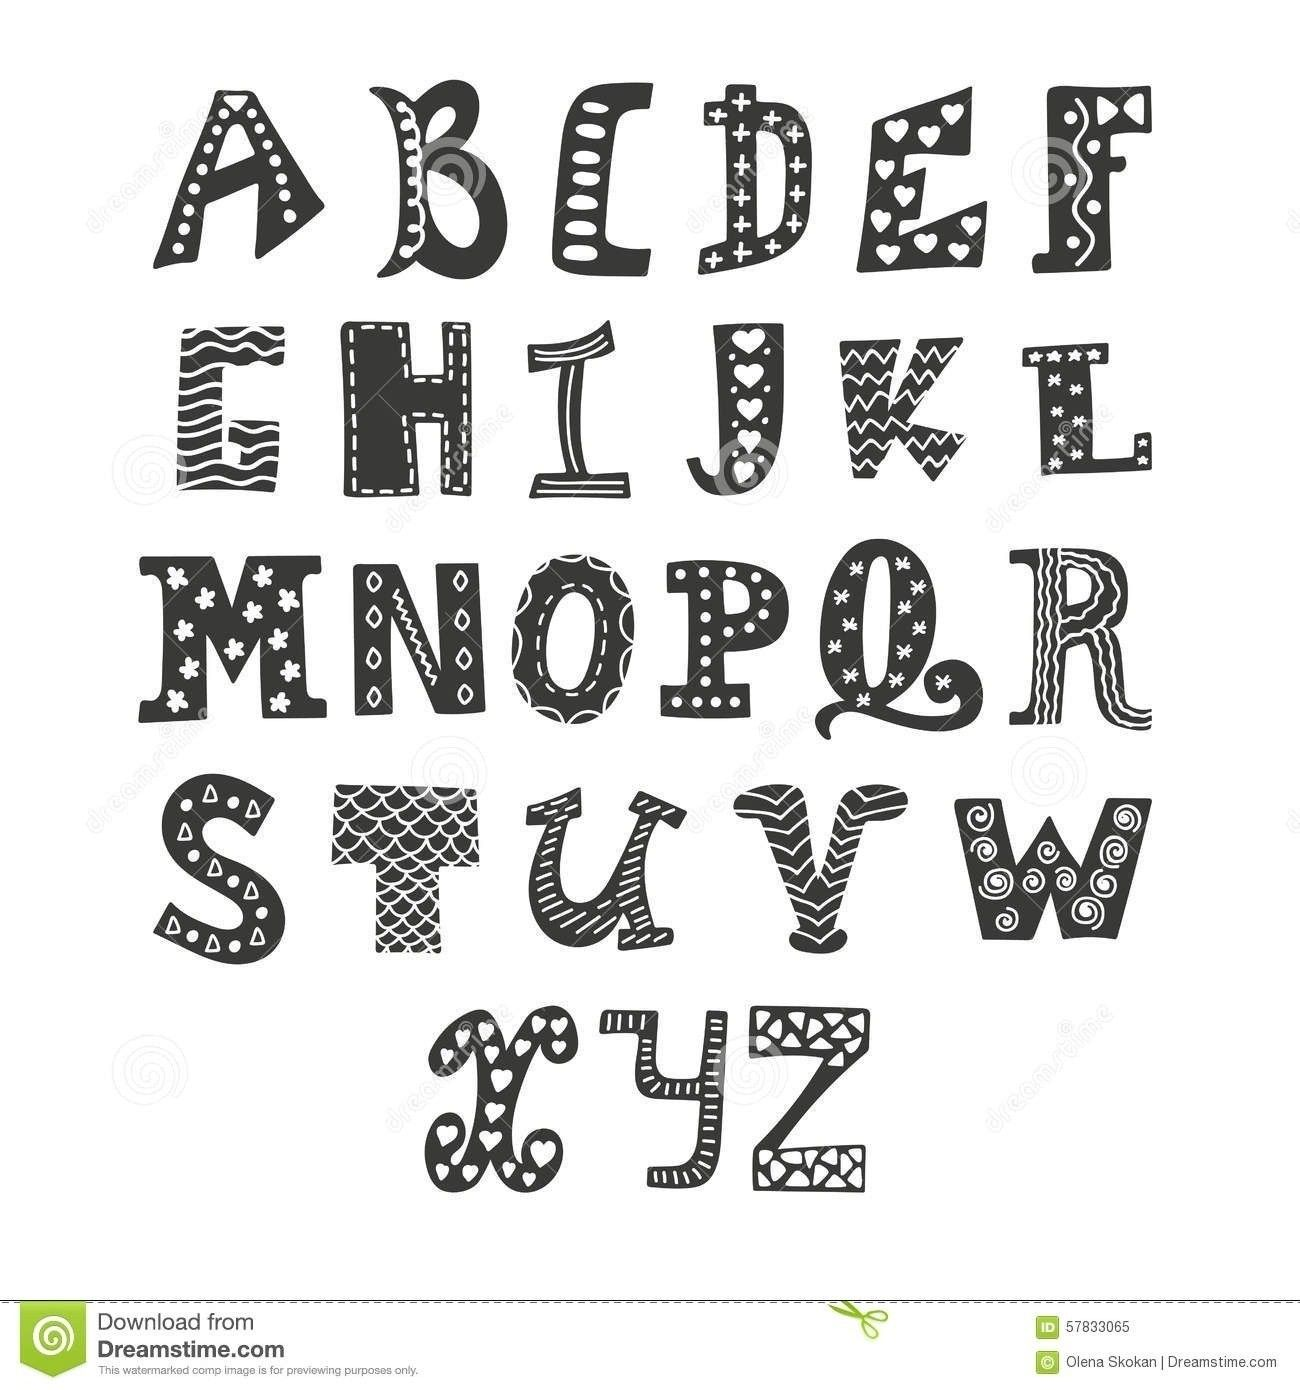 Easy To Draw Letters Hand Lettering Mail Art Pinterest